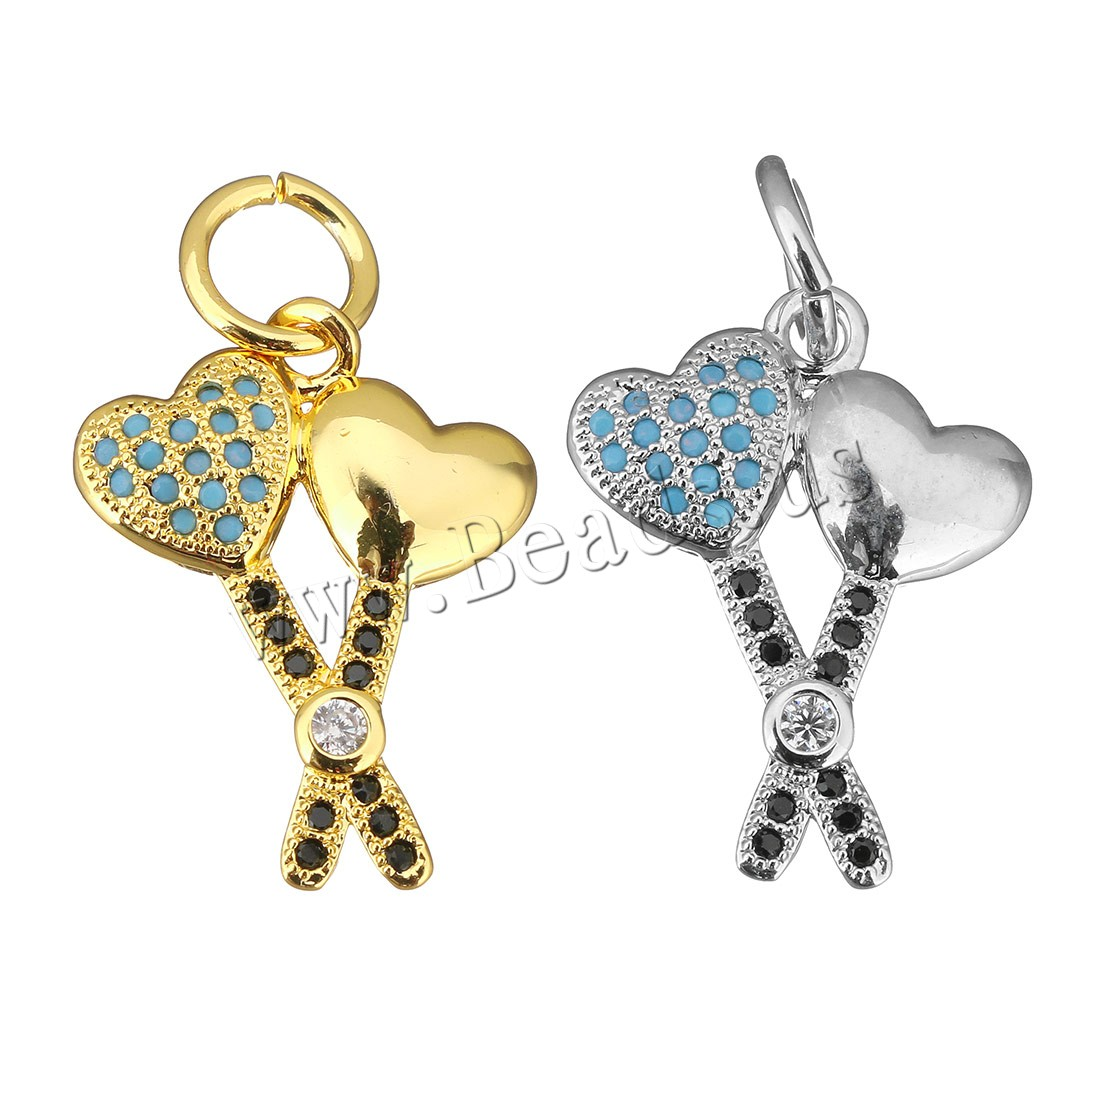 Buy Cubic Zirconia Micro Pave Brass Pendant Heart plated micro pave cubic zirconia colors choice 16x21x3mm Hole:Approx 5mm 1 Sold Lot